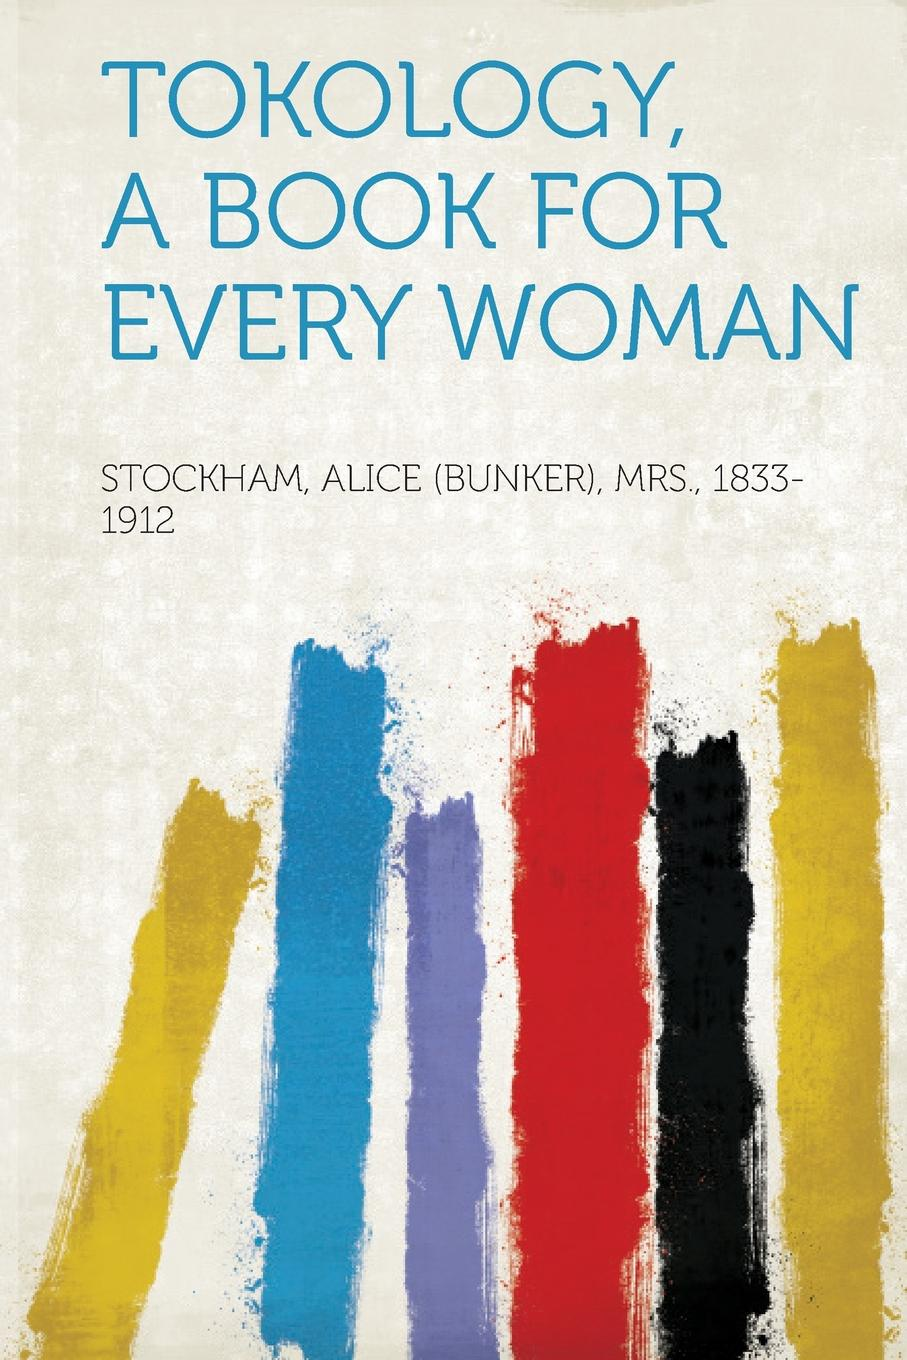 Stockham Alice (Bunker) Mrs 1833-1912 Tokology, a Book for Every Woman